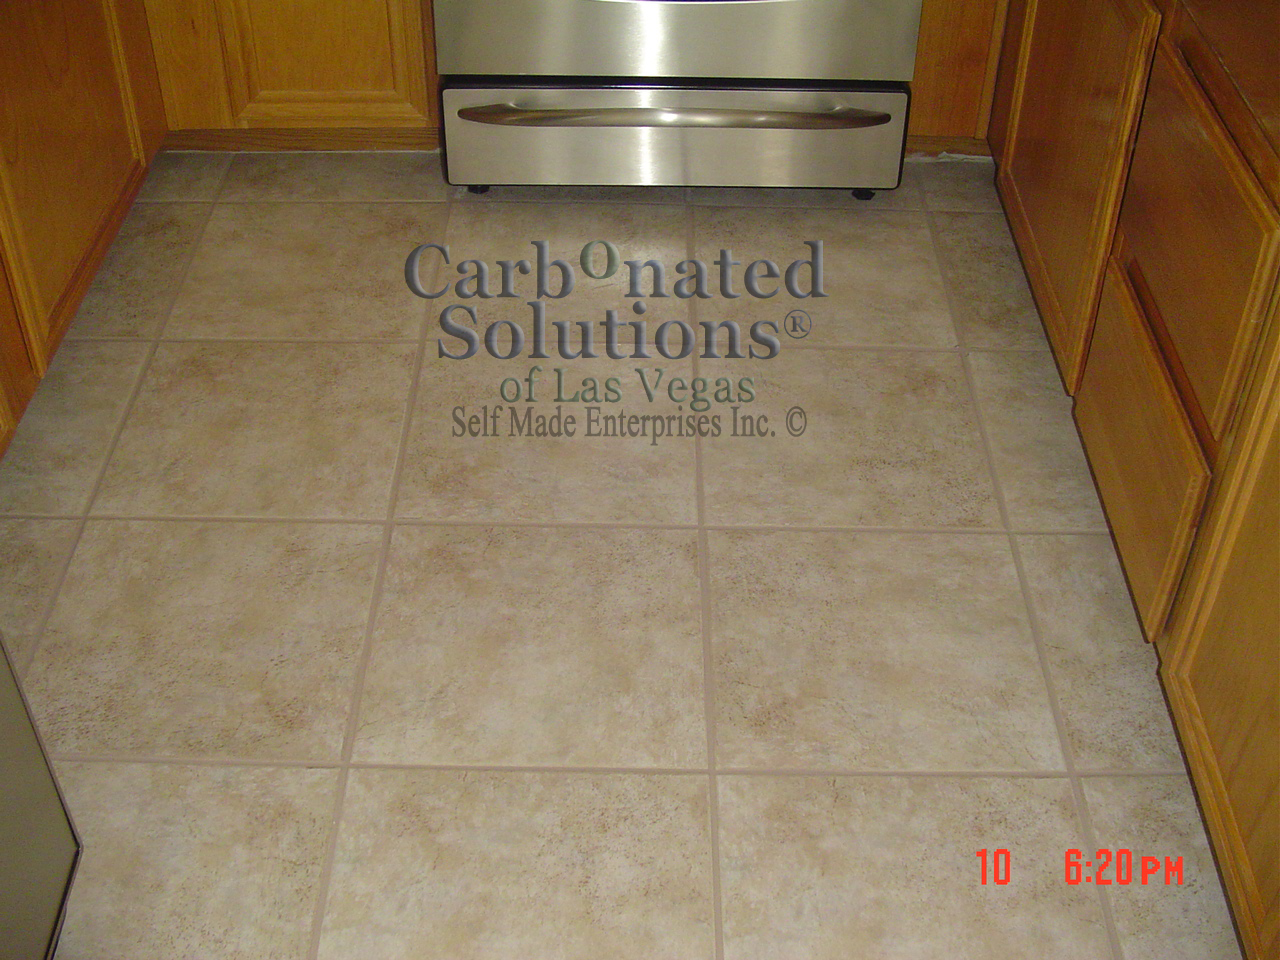 Carbonated Solutions of Las vegas grout sealing and grout ...